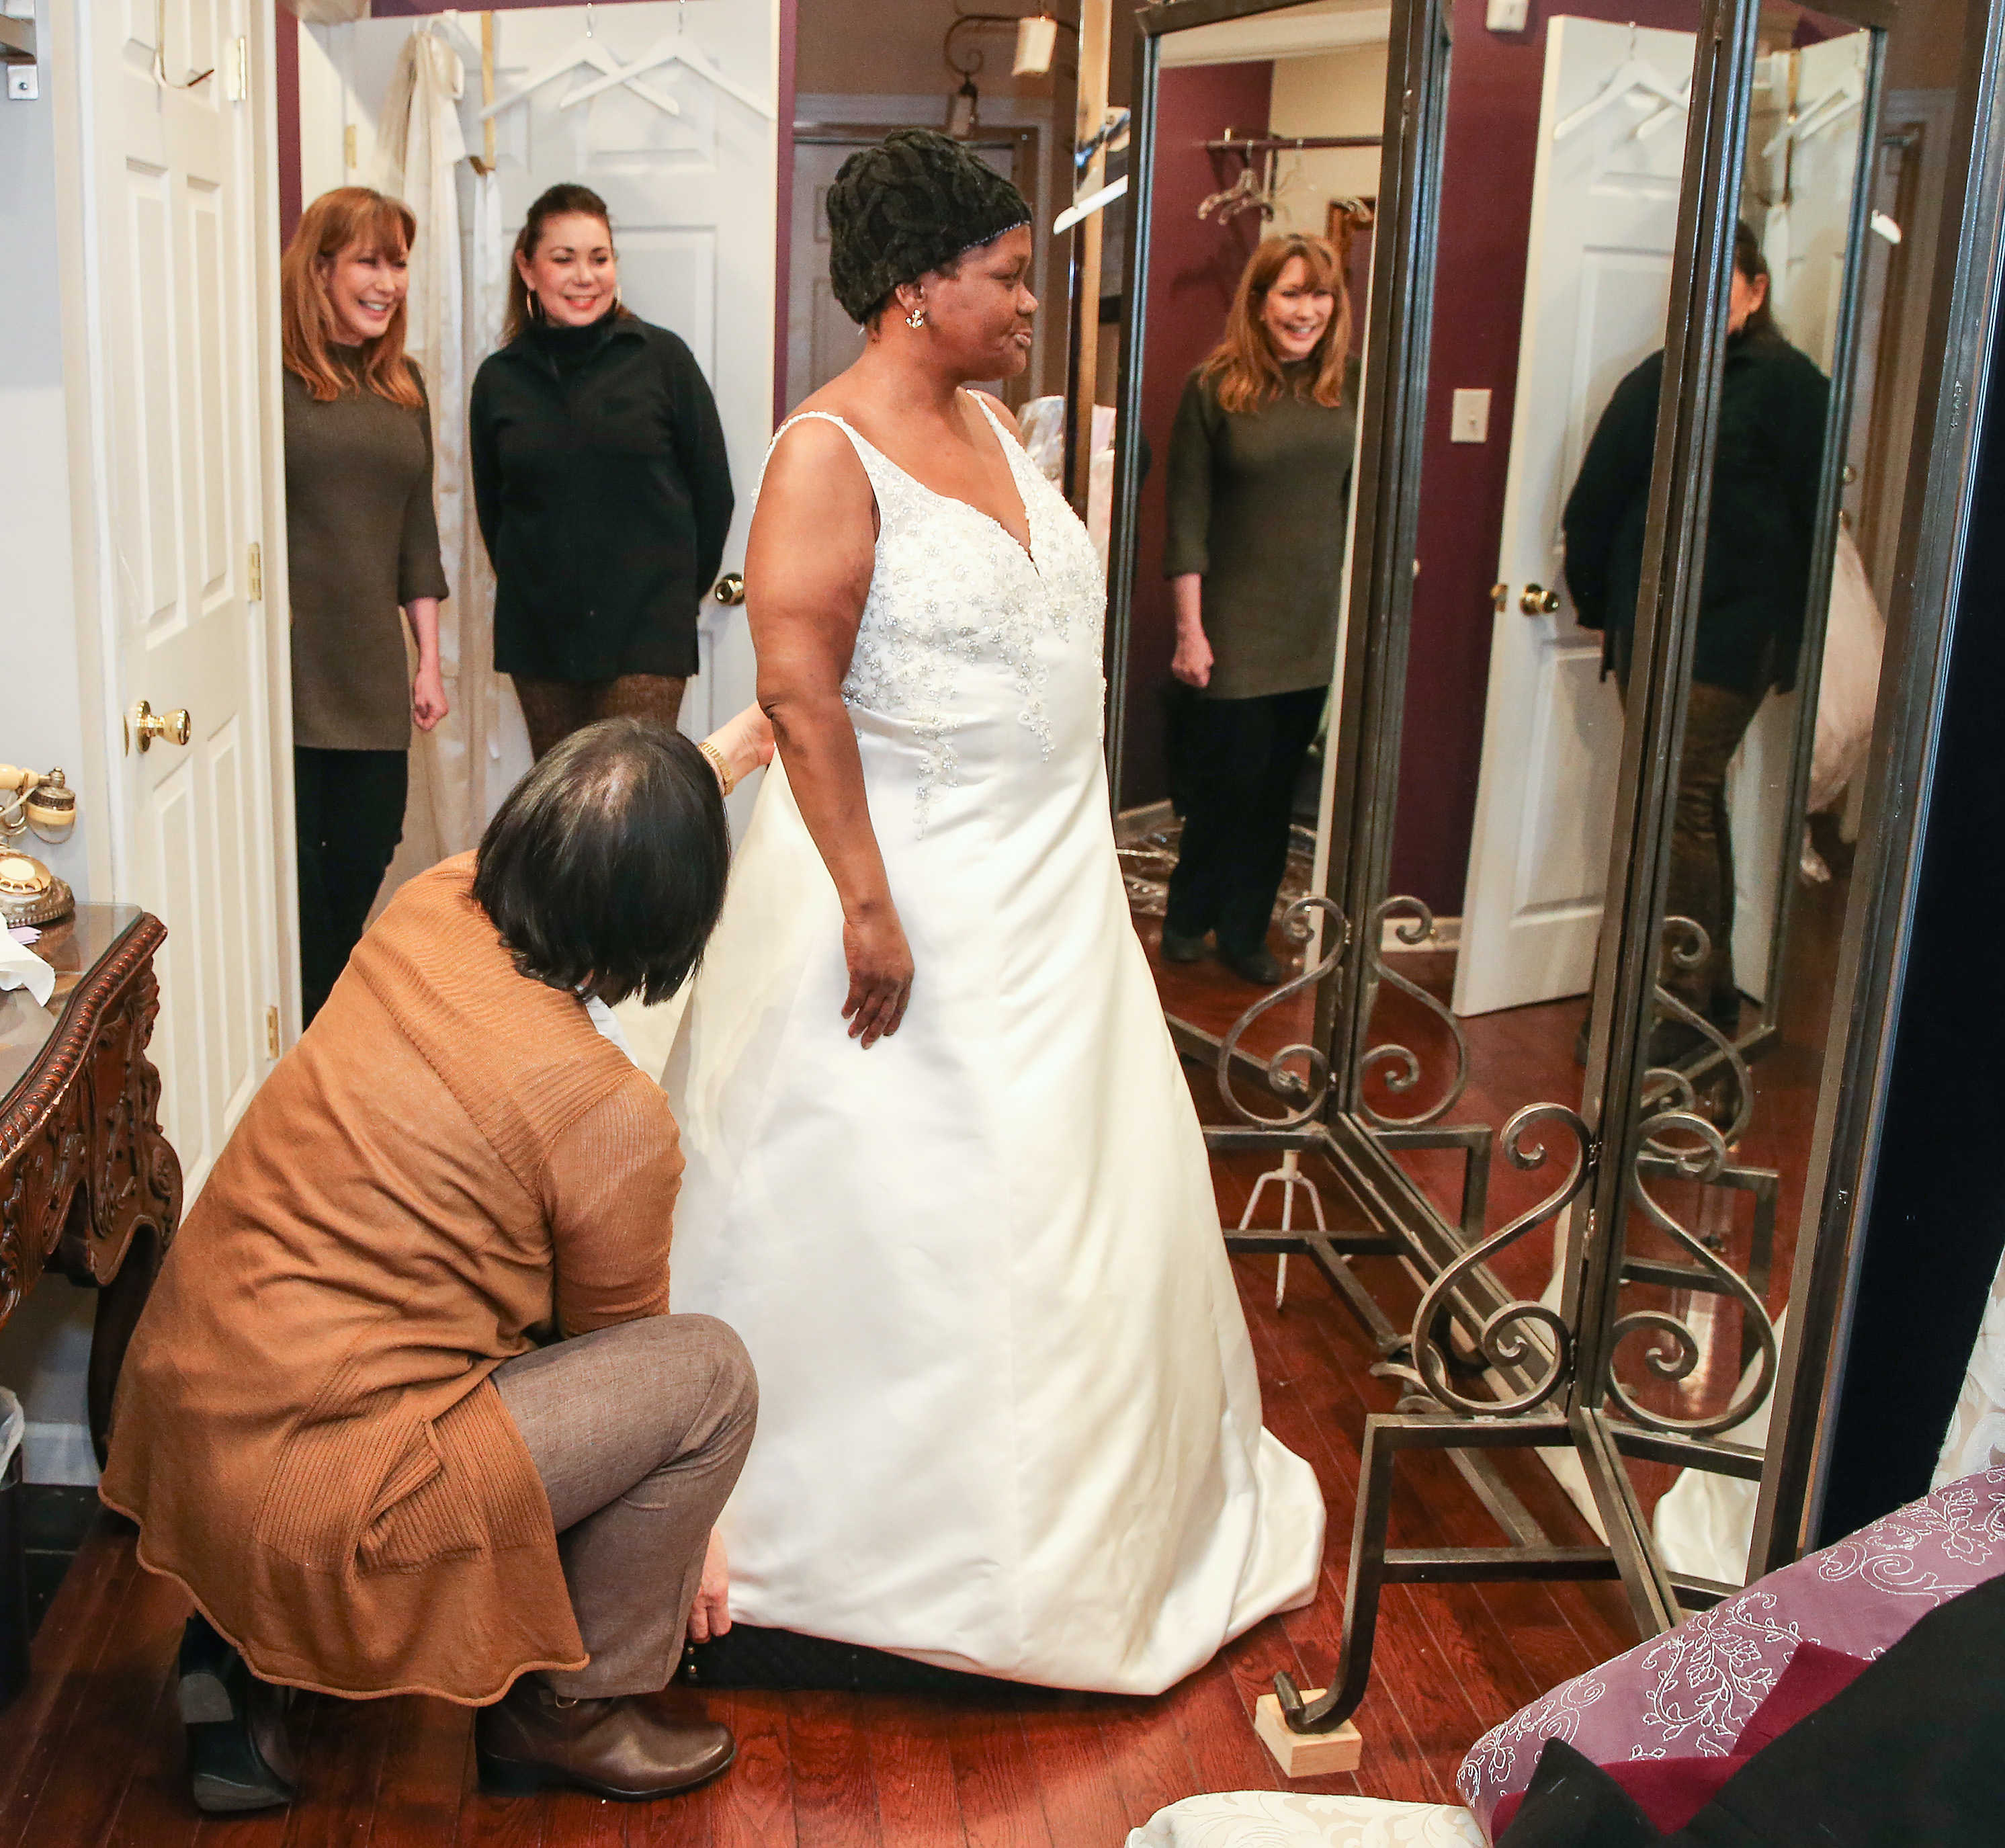 Sharon Suleta (top left) and Carolyn Verdi (top right) watch as seamstress Mira Dieterle fits Maria Isaacs' wedding gown.